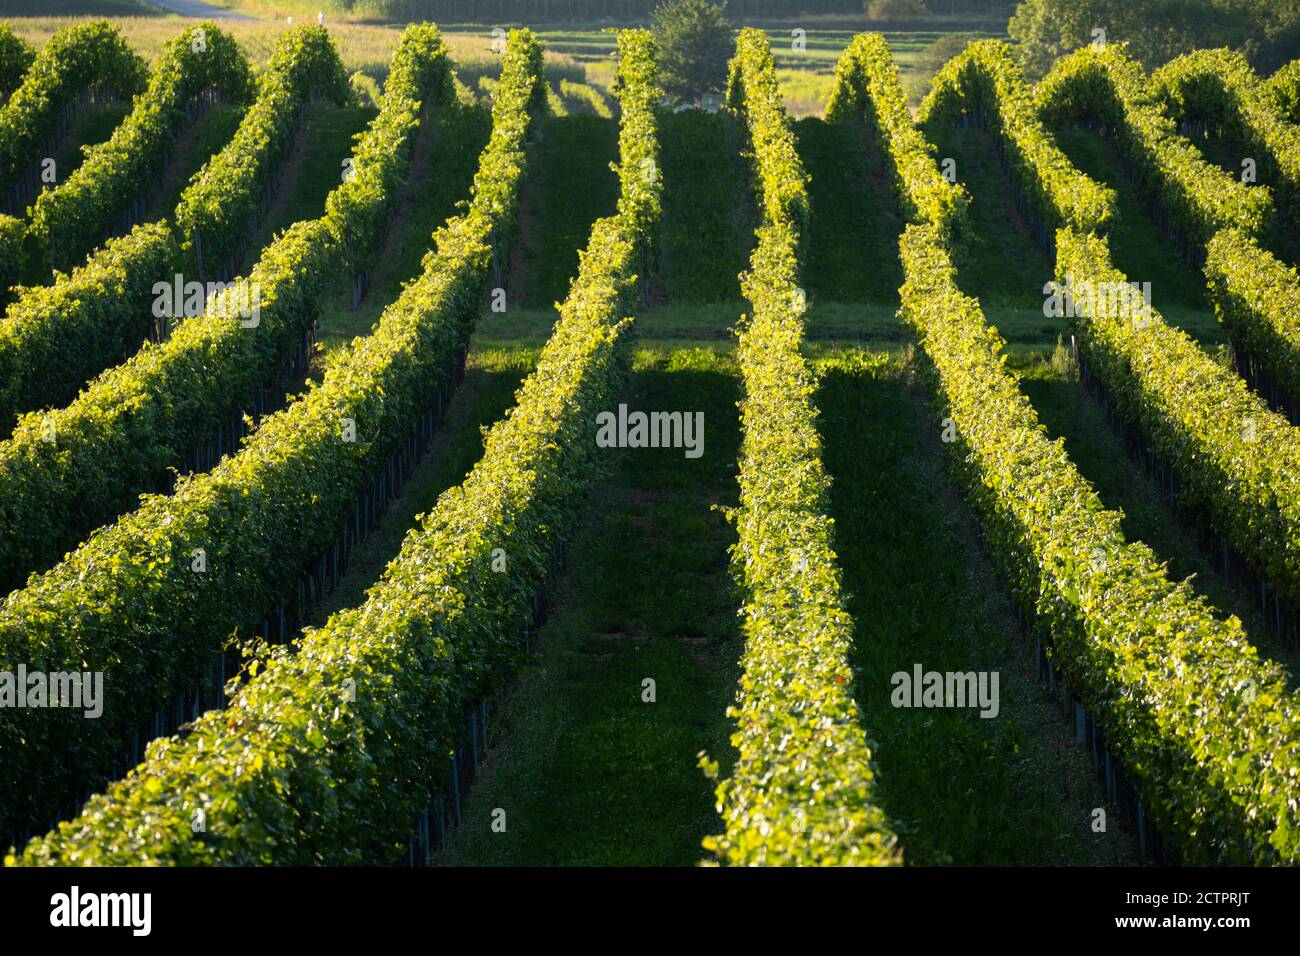 abstract-view-on-rows-of-grape-vines-in-